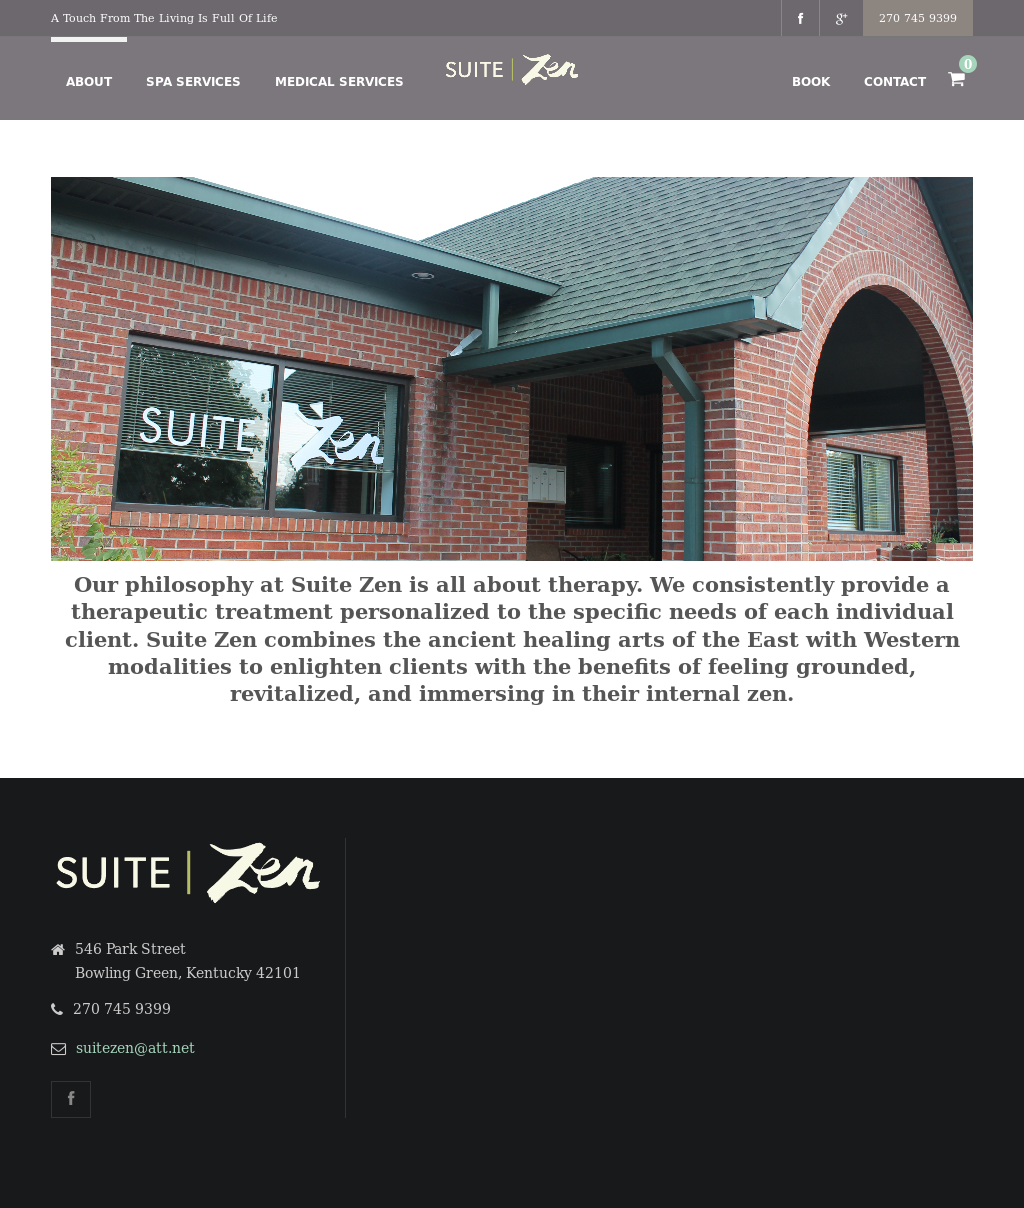 Suite Zen Therapeutic Spa Competitors, Revenue and Employees - Owler